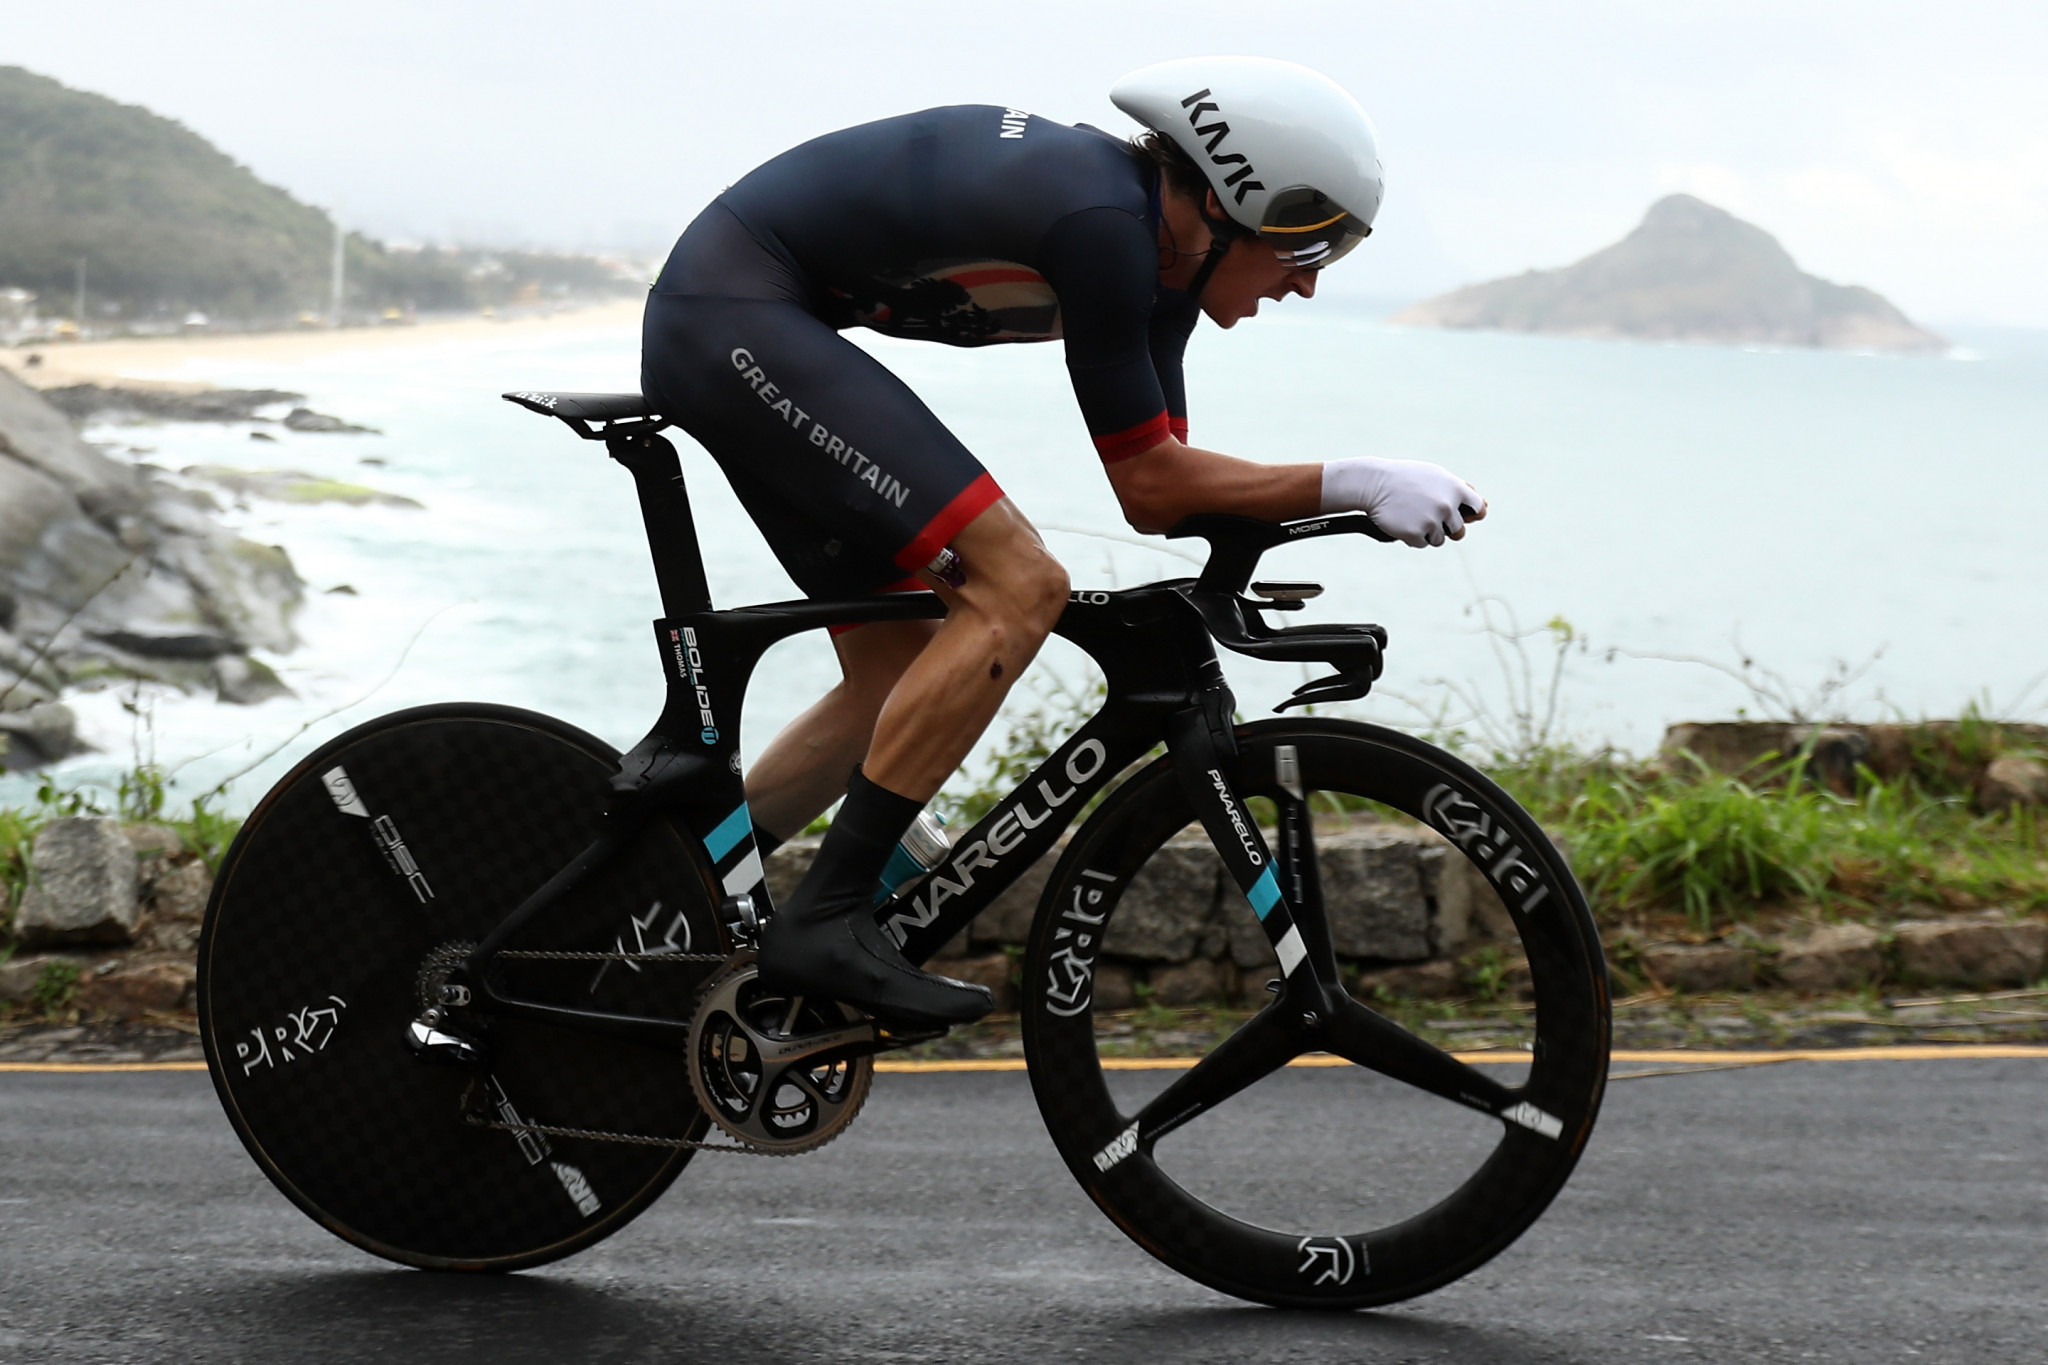 British cyclist Geraint Thomas crashed out of the road race at the Rio 2016 Olympic Games ©Getty Images